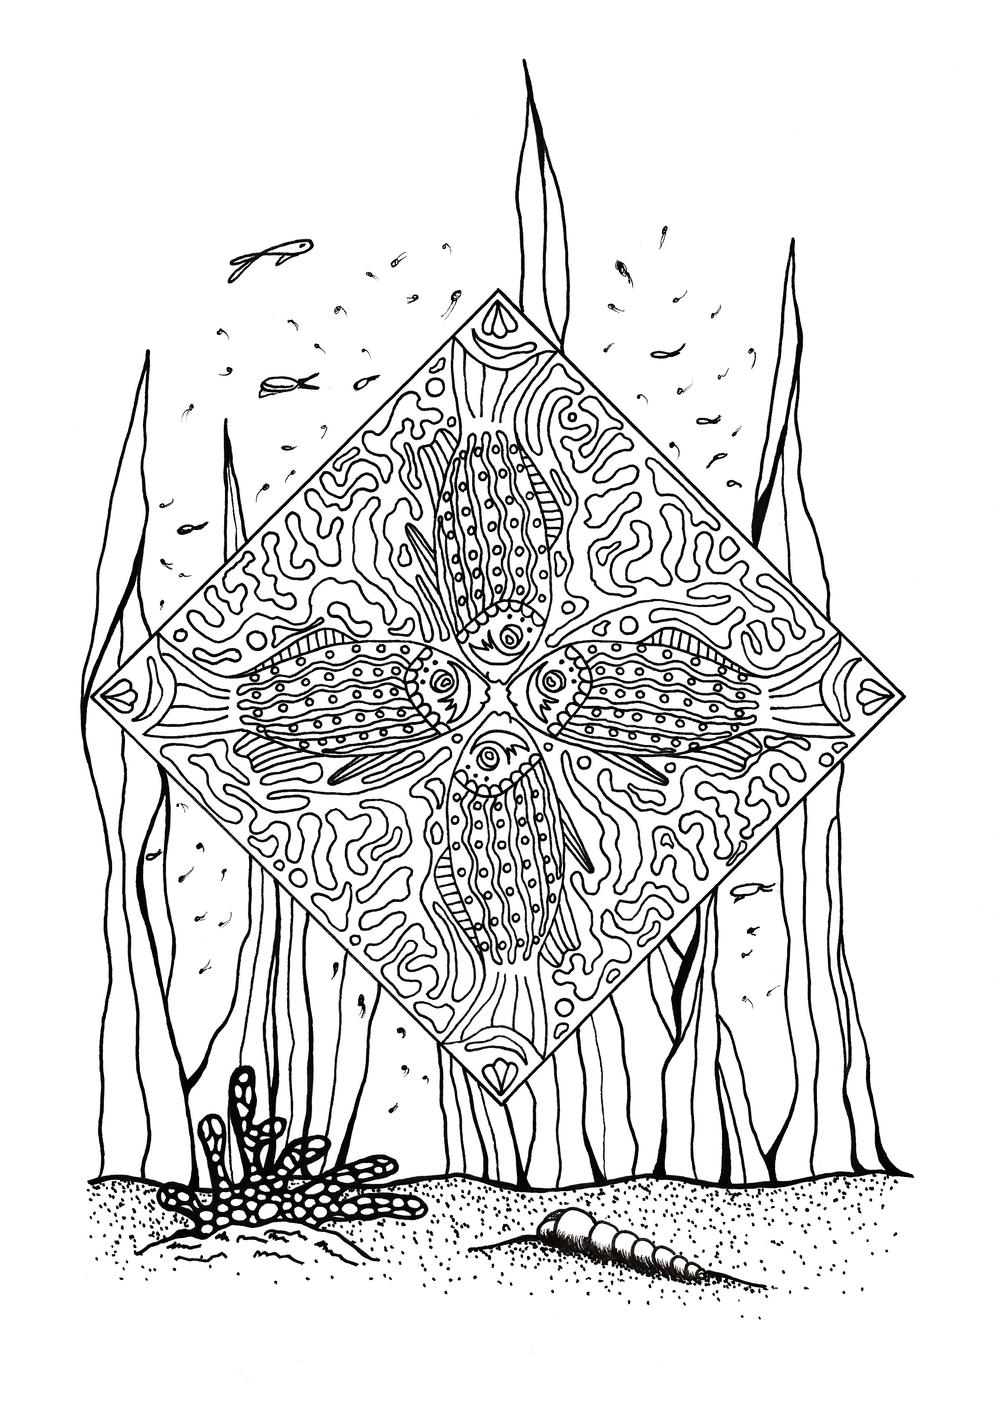 Coral Reef Slice Of Life Adult Coloring Page Favecrafts Com